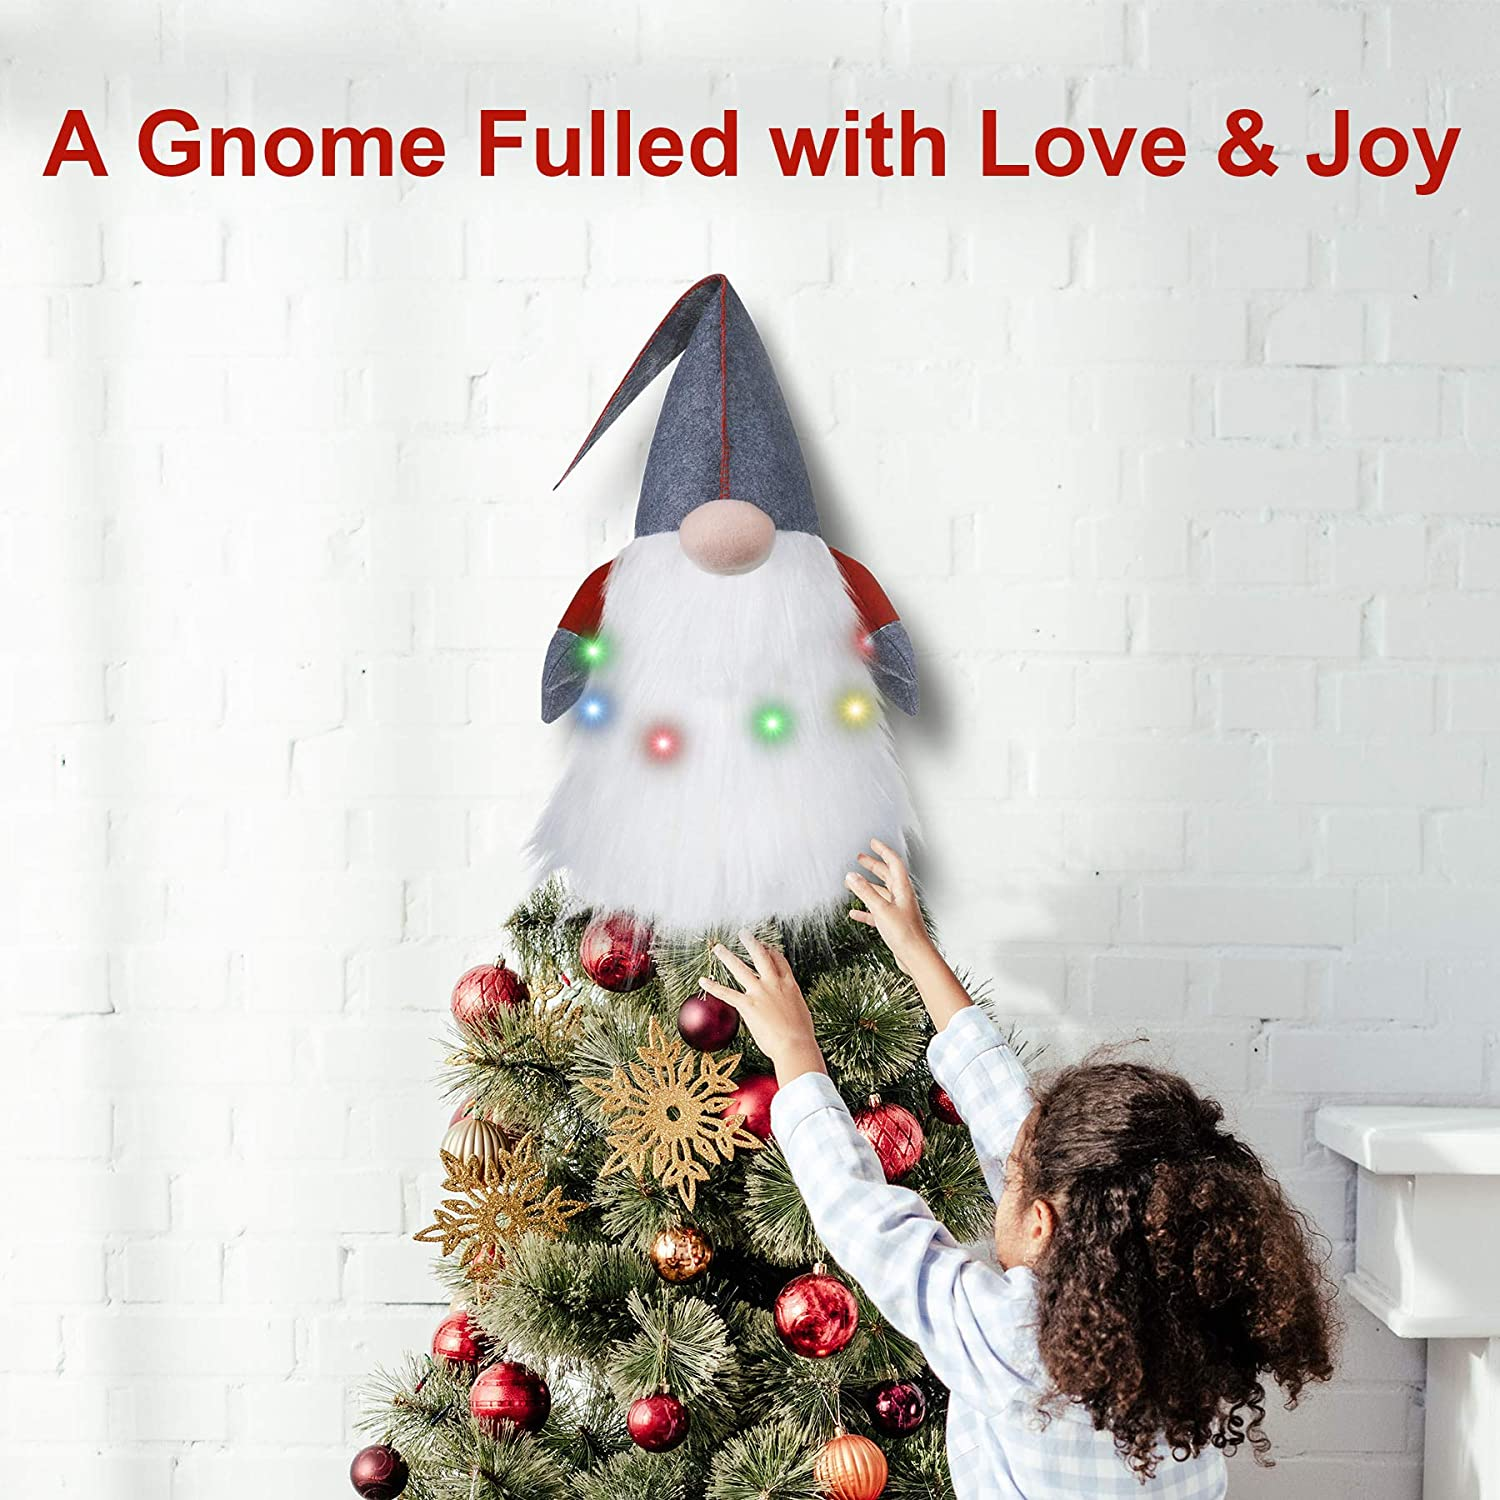 Christmas Tree Topper for Xmas Christmas Decorations Home Party Gift Oubomu Lighted Christmas Tree Topper Large Scandinavian Swedish Tomte Gnome Tree Toppers Battery Operated